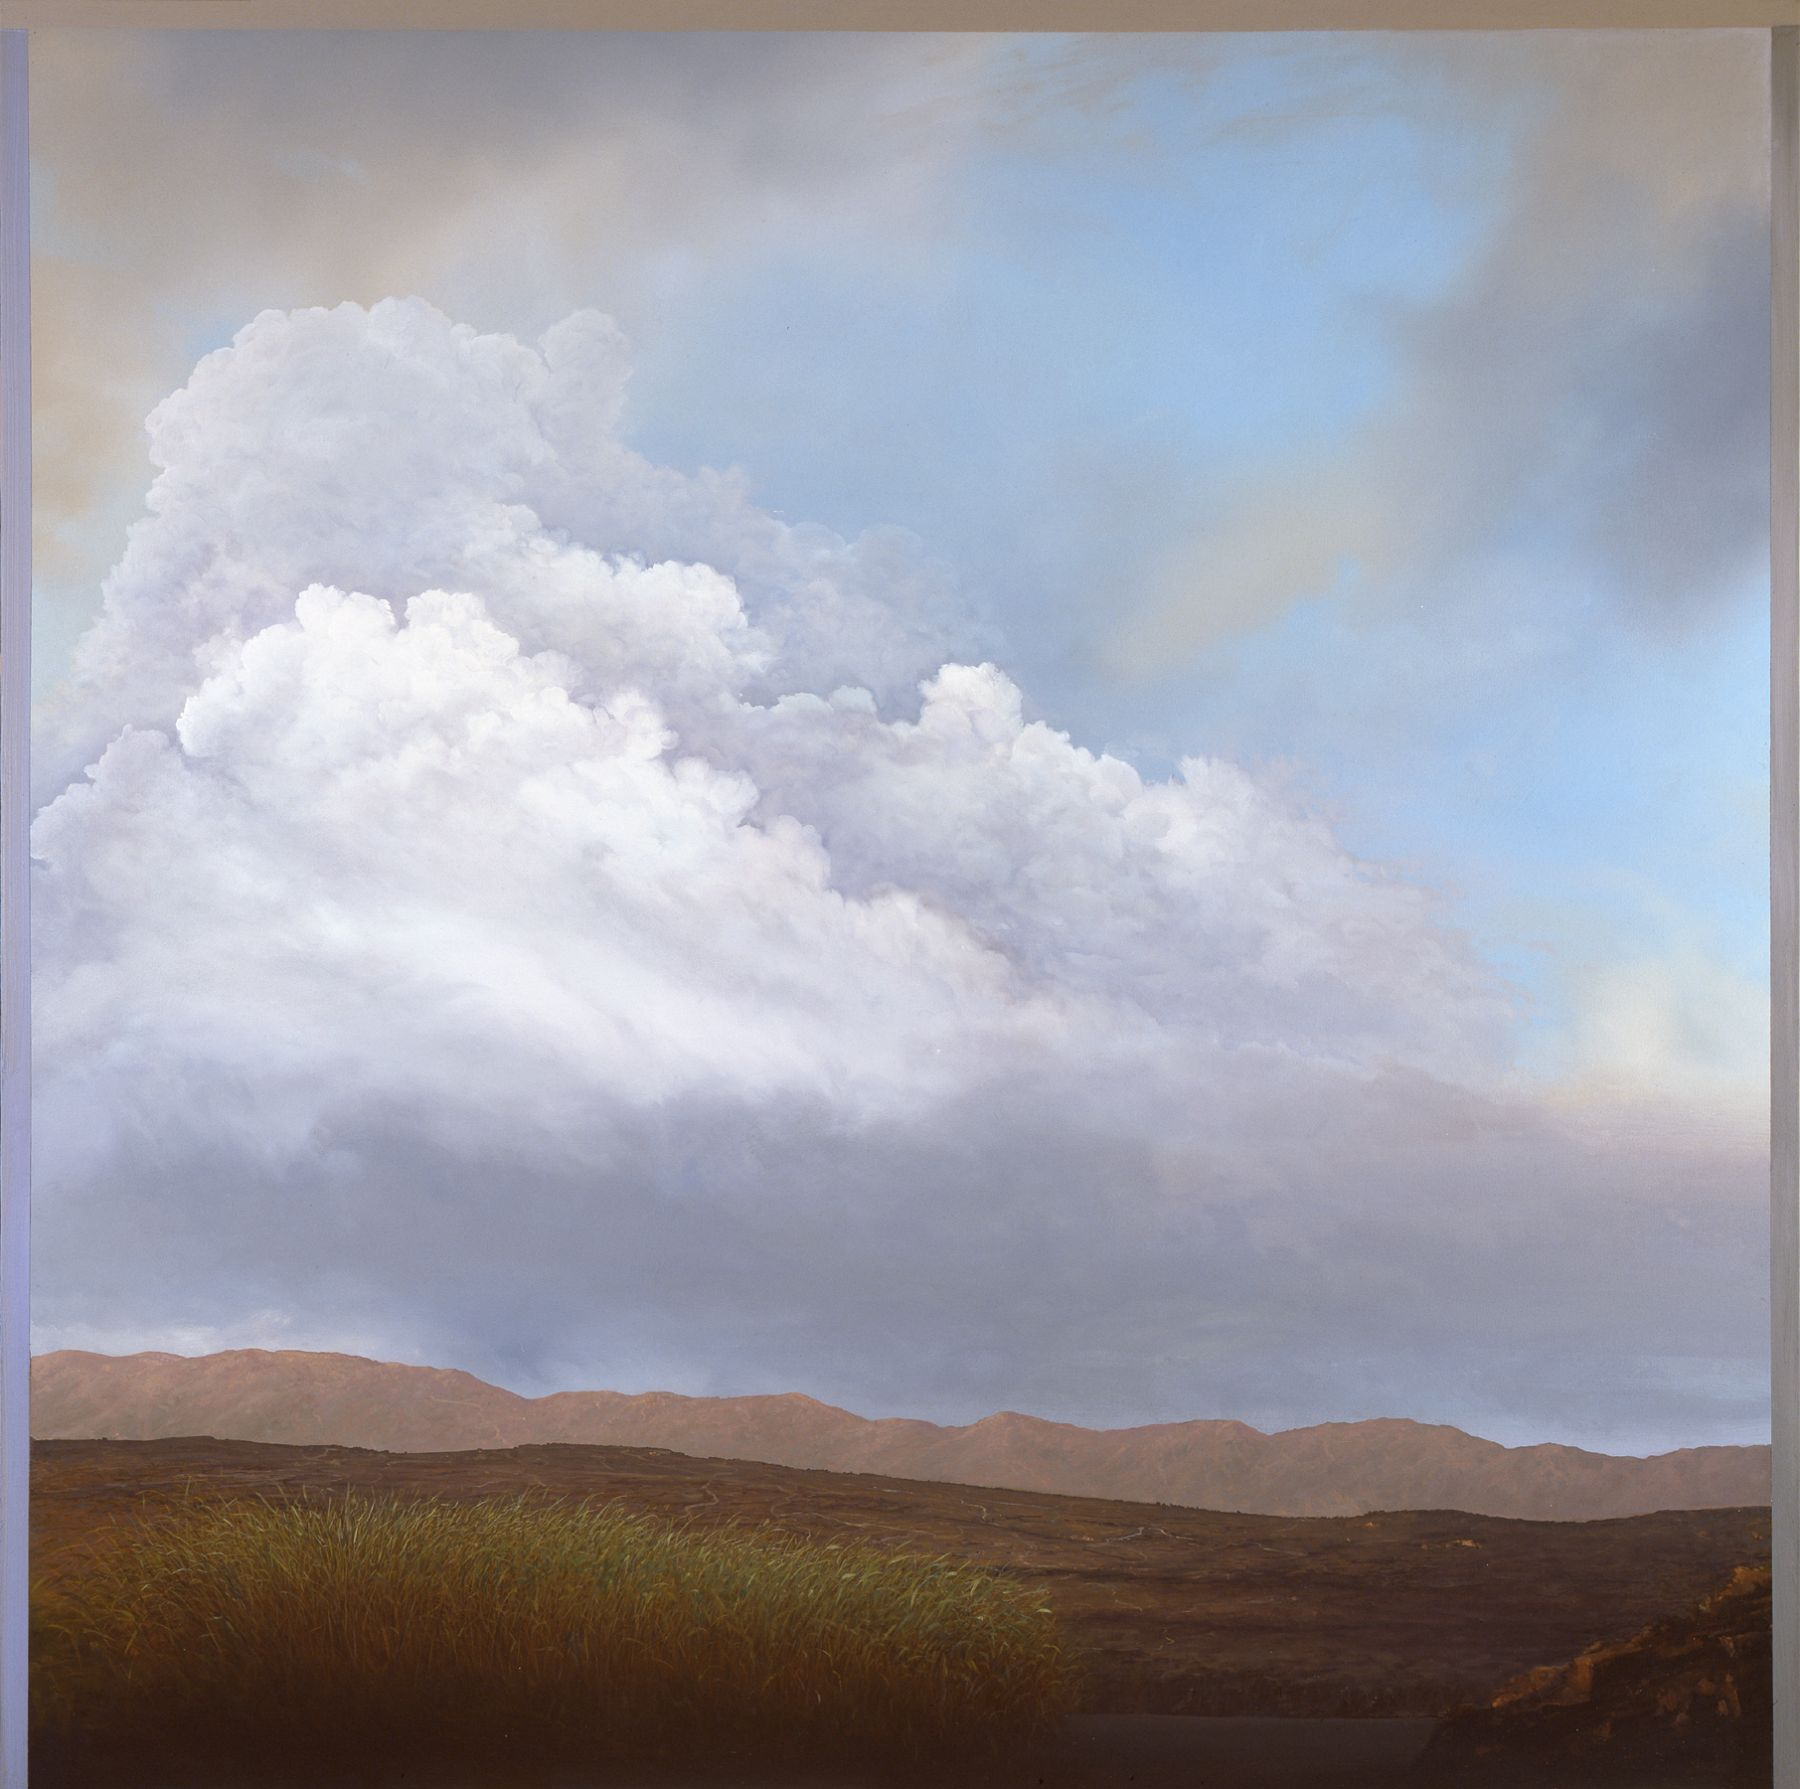 Tula Telfair, The Shifting Boundaries of Space (SOLD), 2007, oil on canvas, 60 x 60 inches